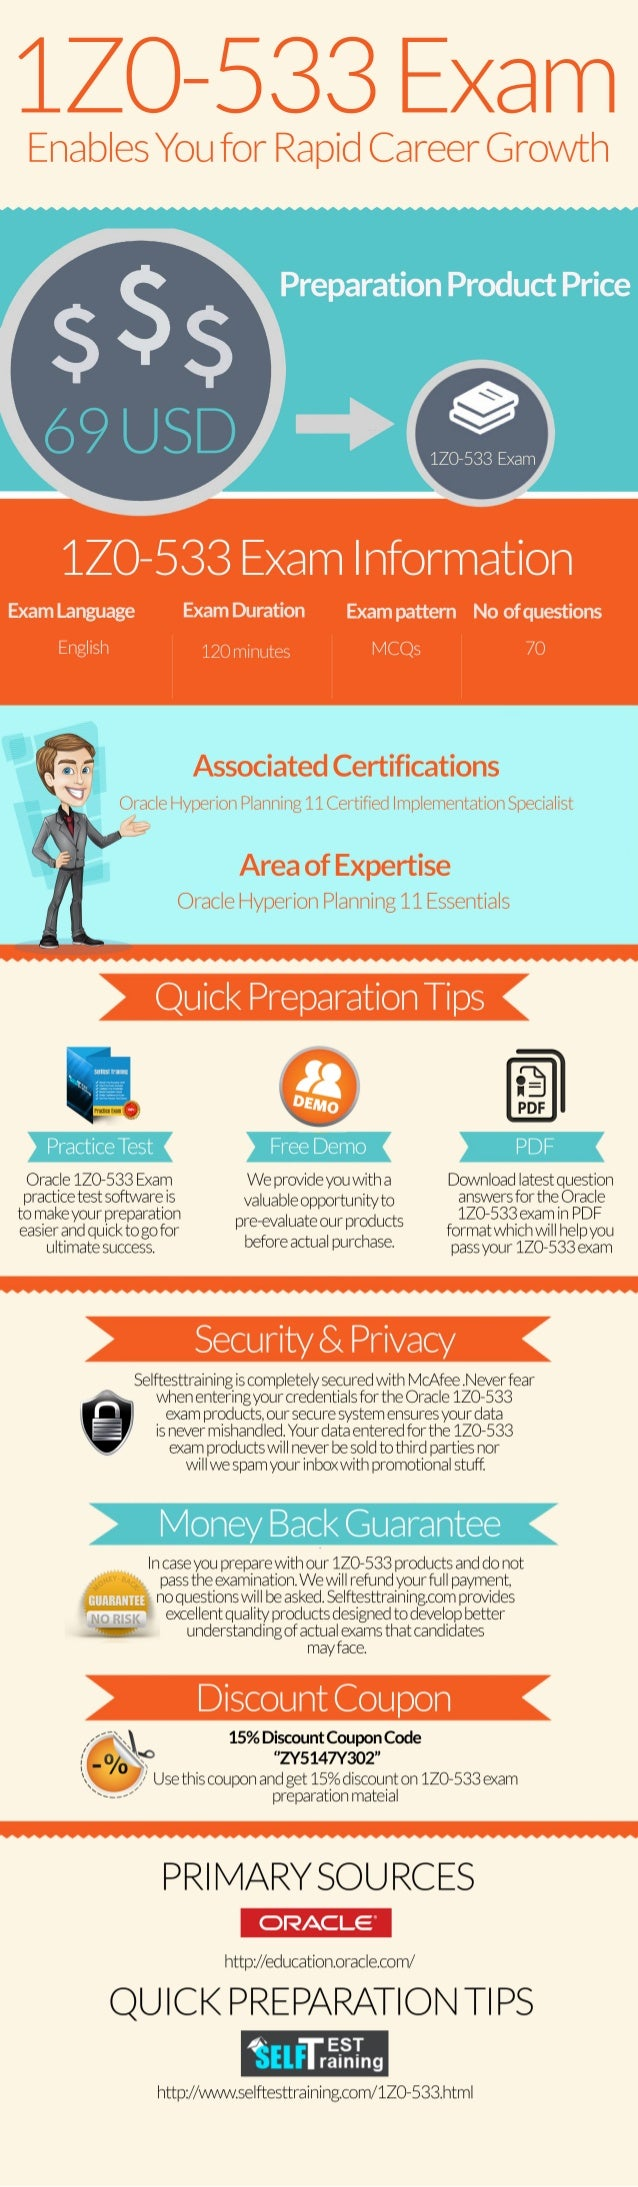 1z0-533 exam questions & practice tests [infographic]